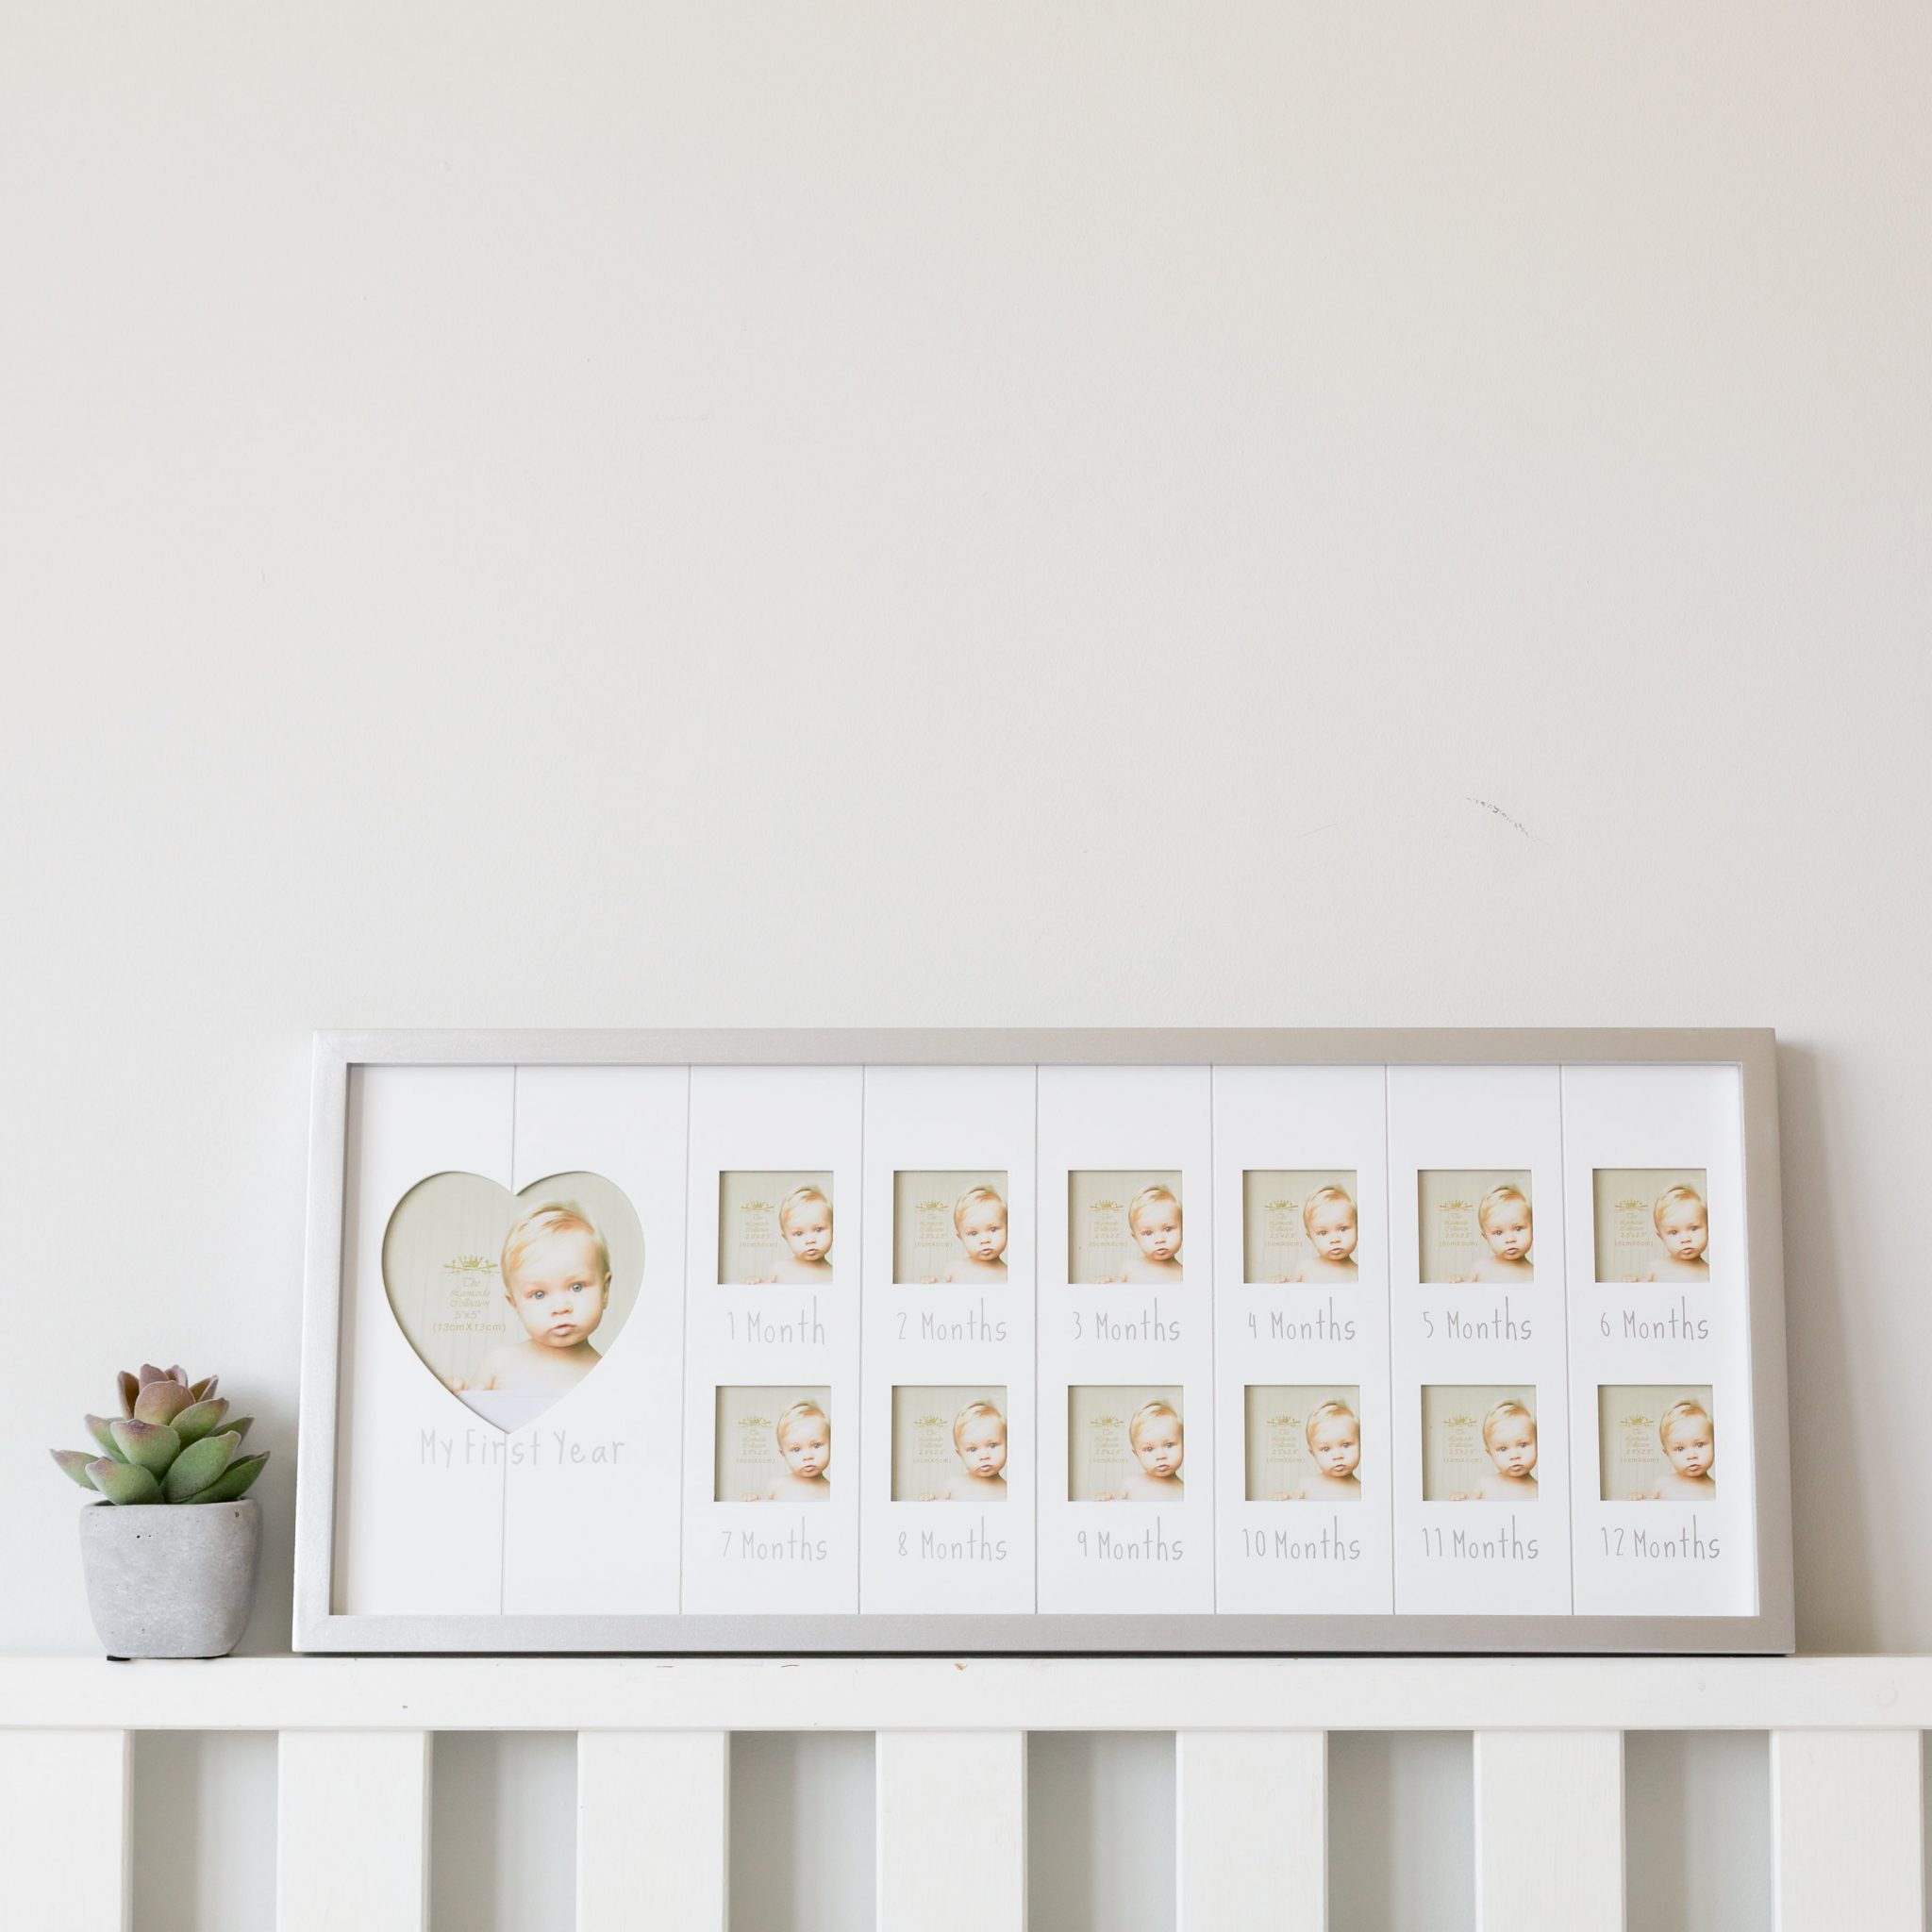 Landscape Sentiments Silver My First Year Baby Photo Frame Love